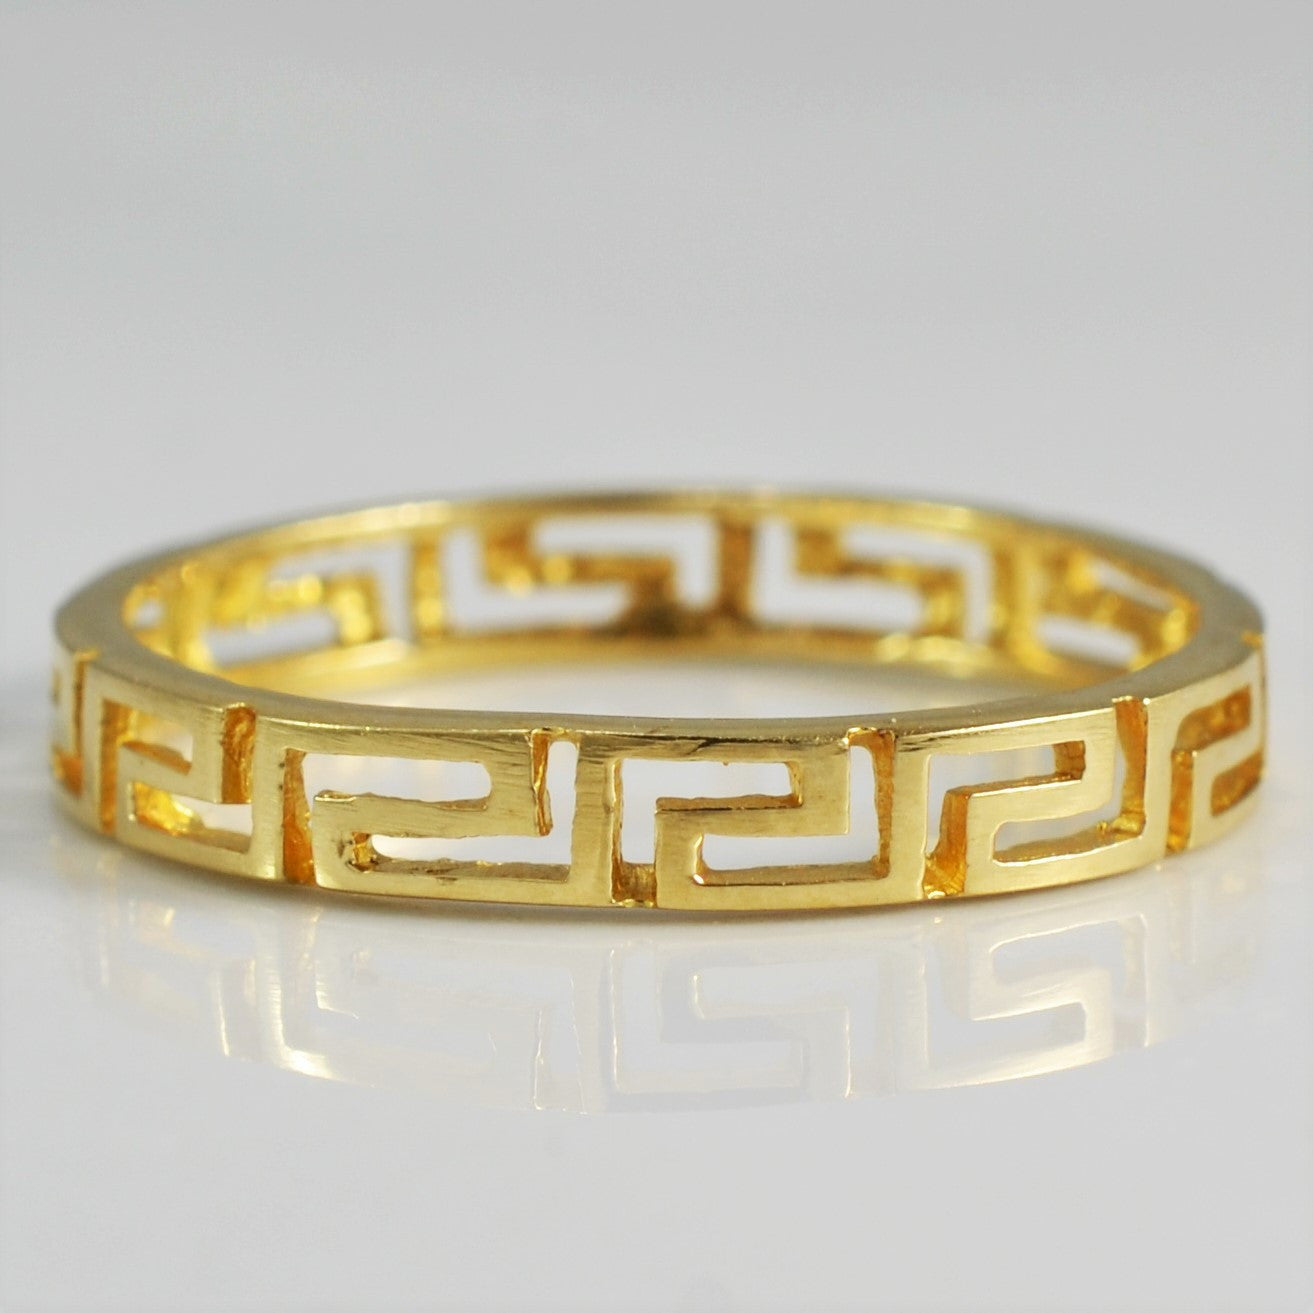 Gold Geometric Patterned Band | SZ 9 |